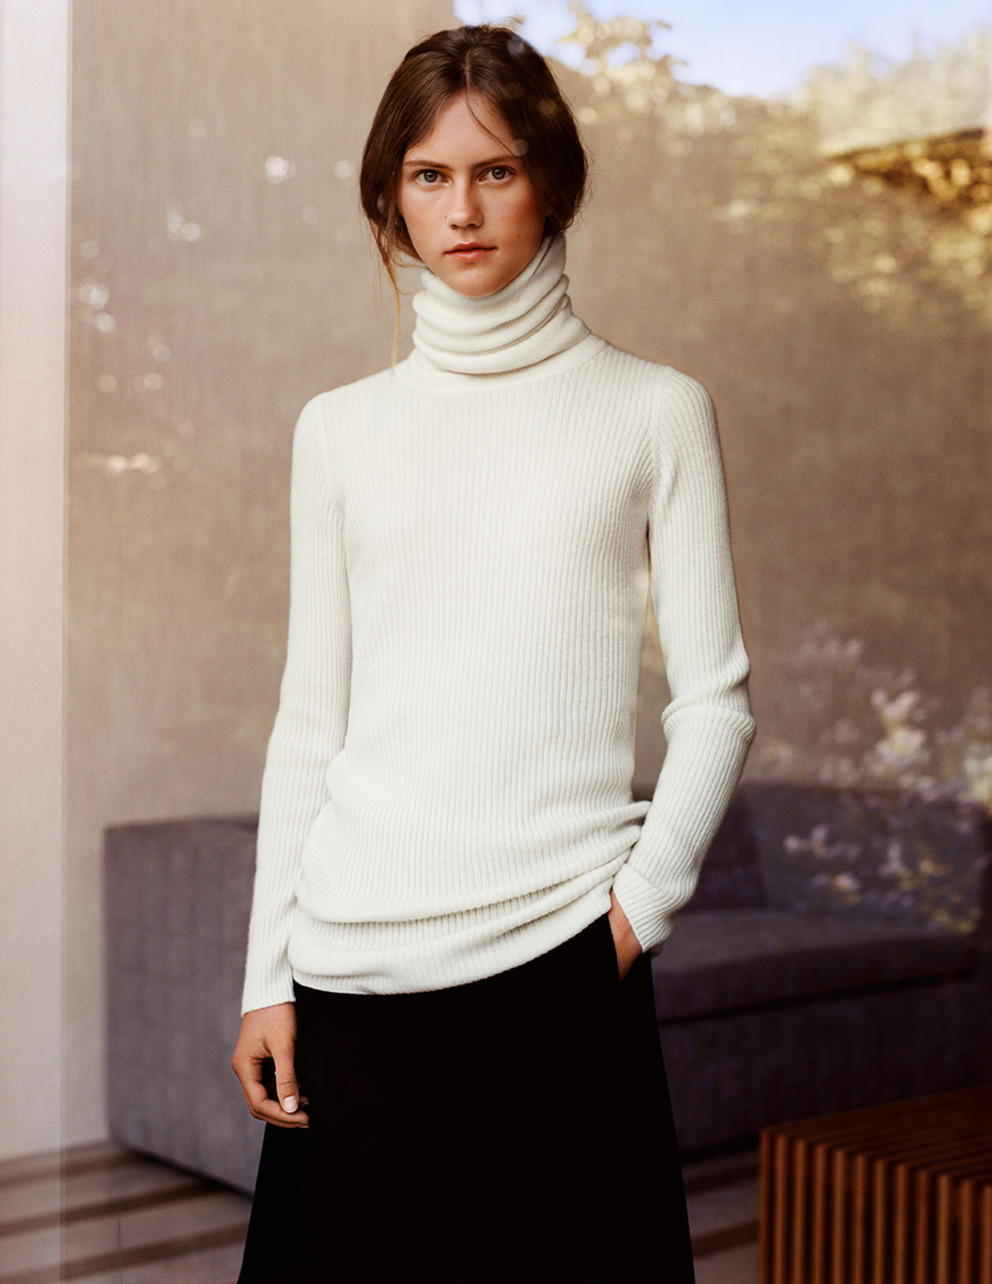 turtleneck sweater.jpg